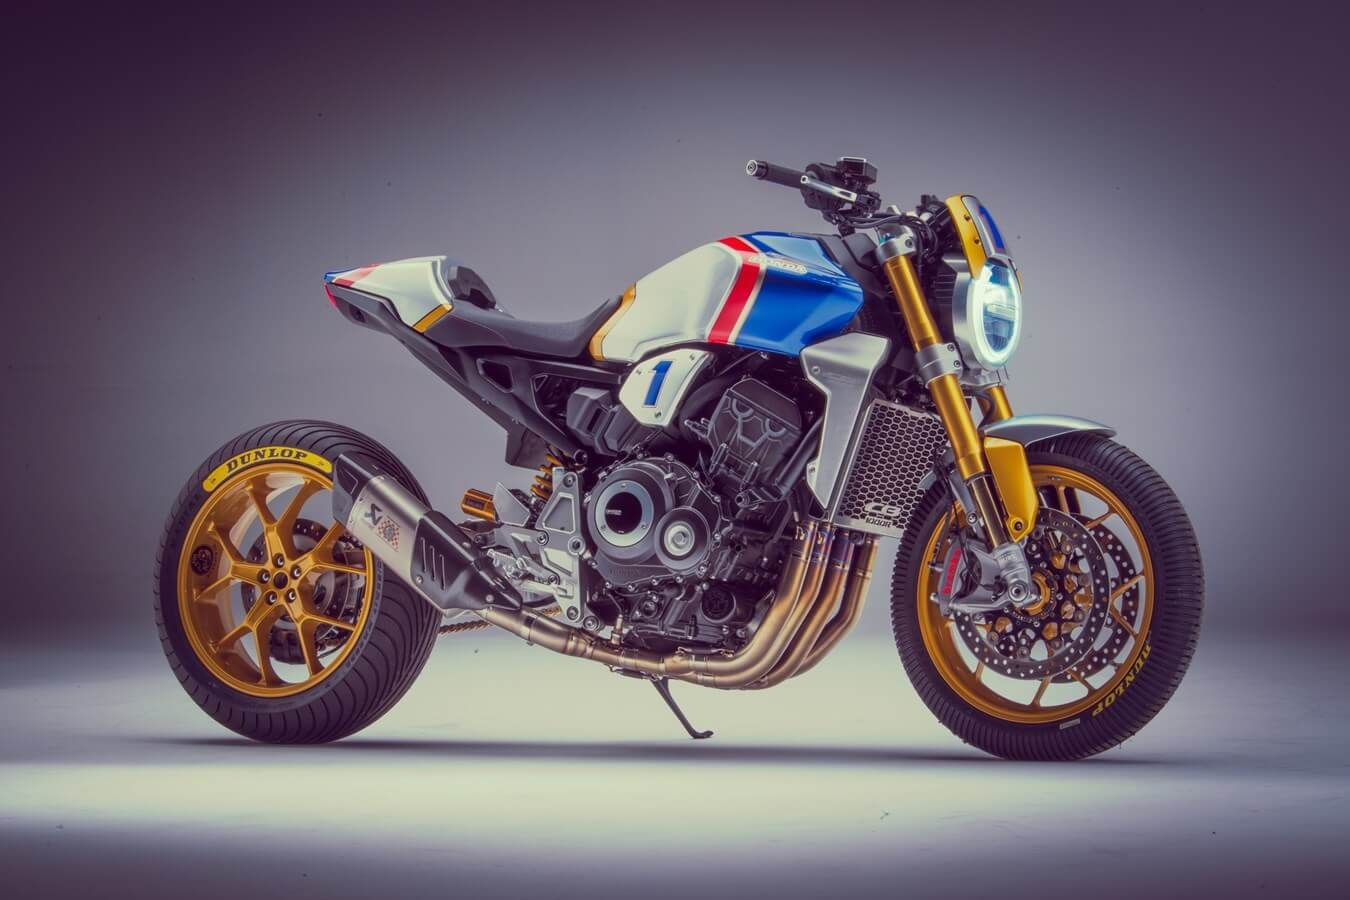 Pin On New Honda Cb1000r Customized By Honda Racing With Cbr1000rr Sp Parts Naked Sport Bike Streetfighter Motorcycle Neo Sports Café Conce